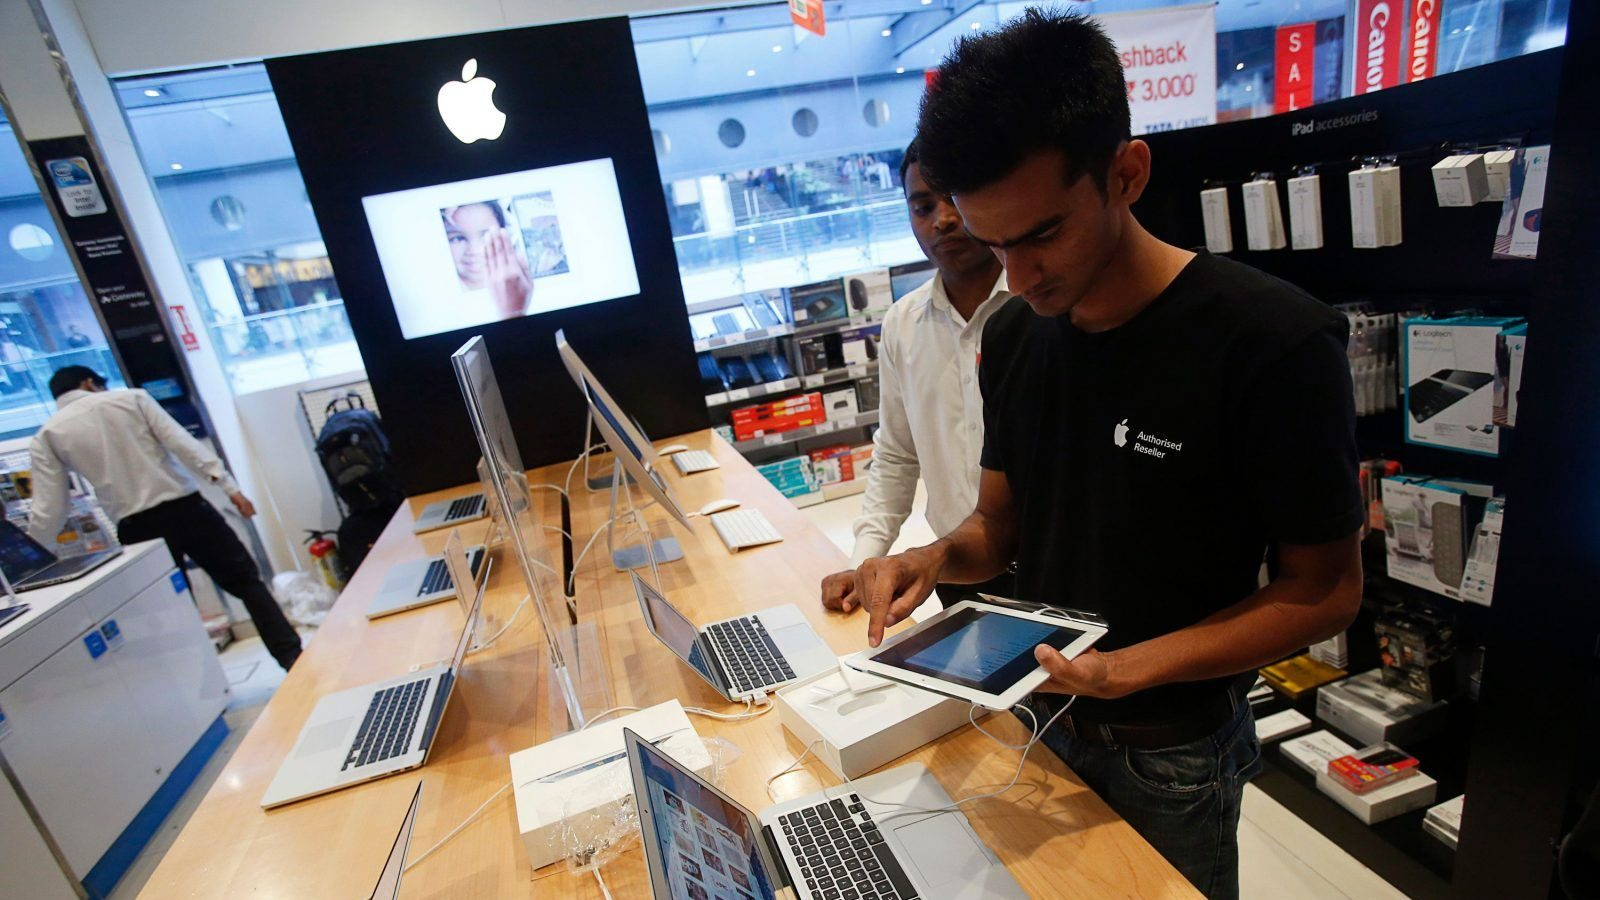 A salesperson unpacks an Apple iPad Mini to test it for a customer in the Apple specialty section of a Croma retail store in Mumbai February 22, 2013. The store offers Apple products including iPhones and iPads on instalment plans. More than four years after it started selling iPhones in India, Apple Inc is now aggressively pushing the iconic device through instalment payment plans that make it more affordable, a new distribution model and heavy marketing blitz. The result: iPhone shipments to India between October and December of 2012 nearly tripled to 250,000 units from 90,000 in the previous quarter, according to an estimate by Jessica Kwee, a Singapore-based analyst at consultancy Canalys. Picture taken February 22, 2013. REUTERS/Vivek Prakash (INDIA - Tags: BUSINESS SCIENCE TECHNOLOGY) - GM1E92O1UB001